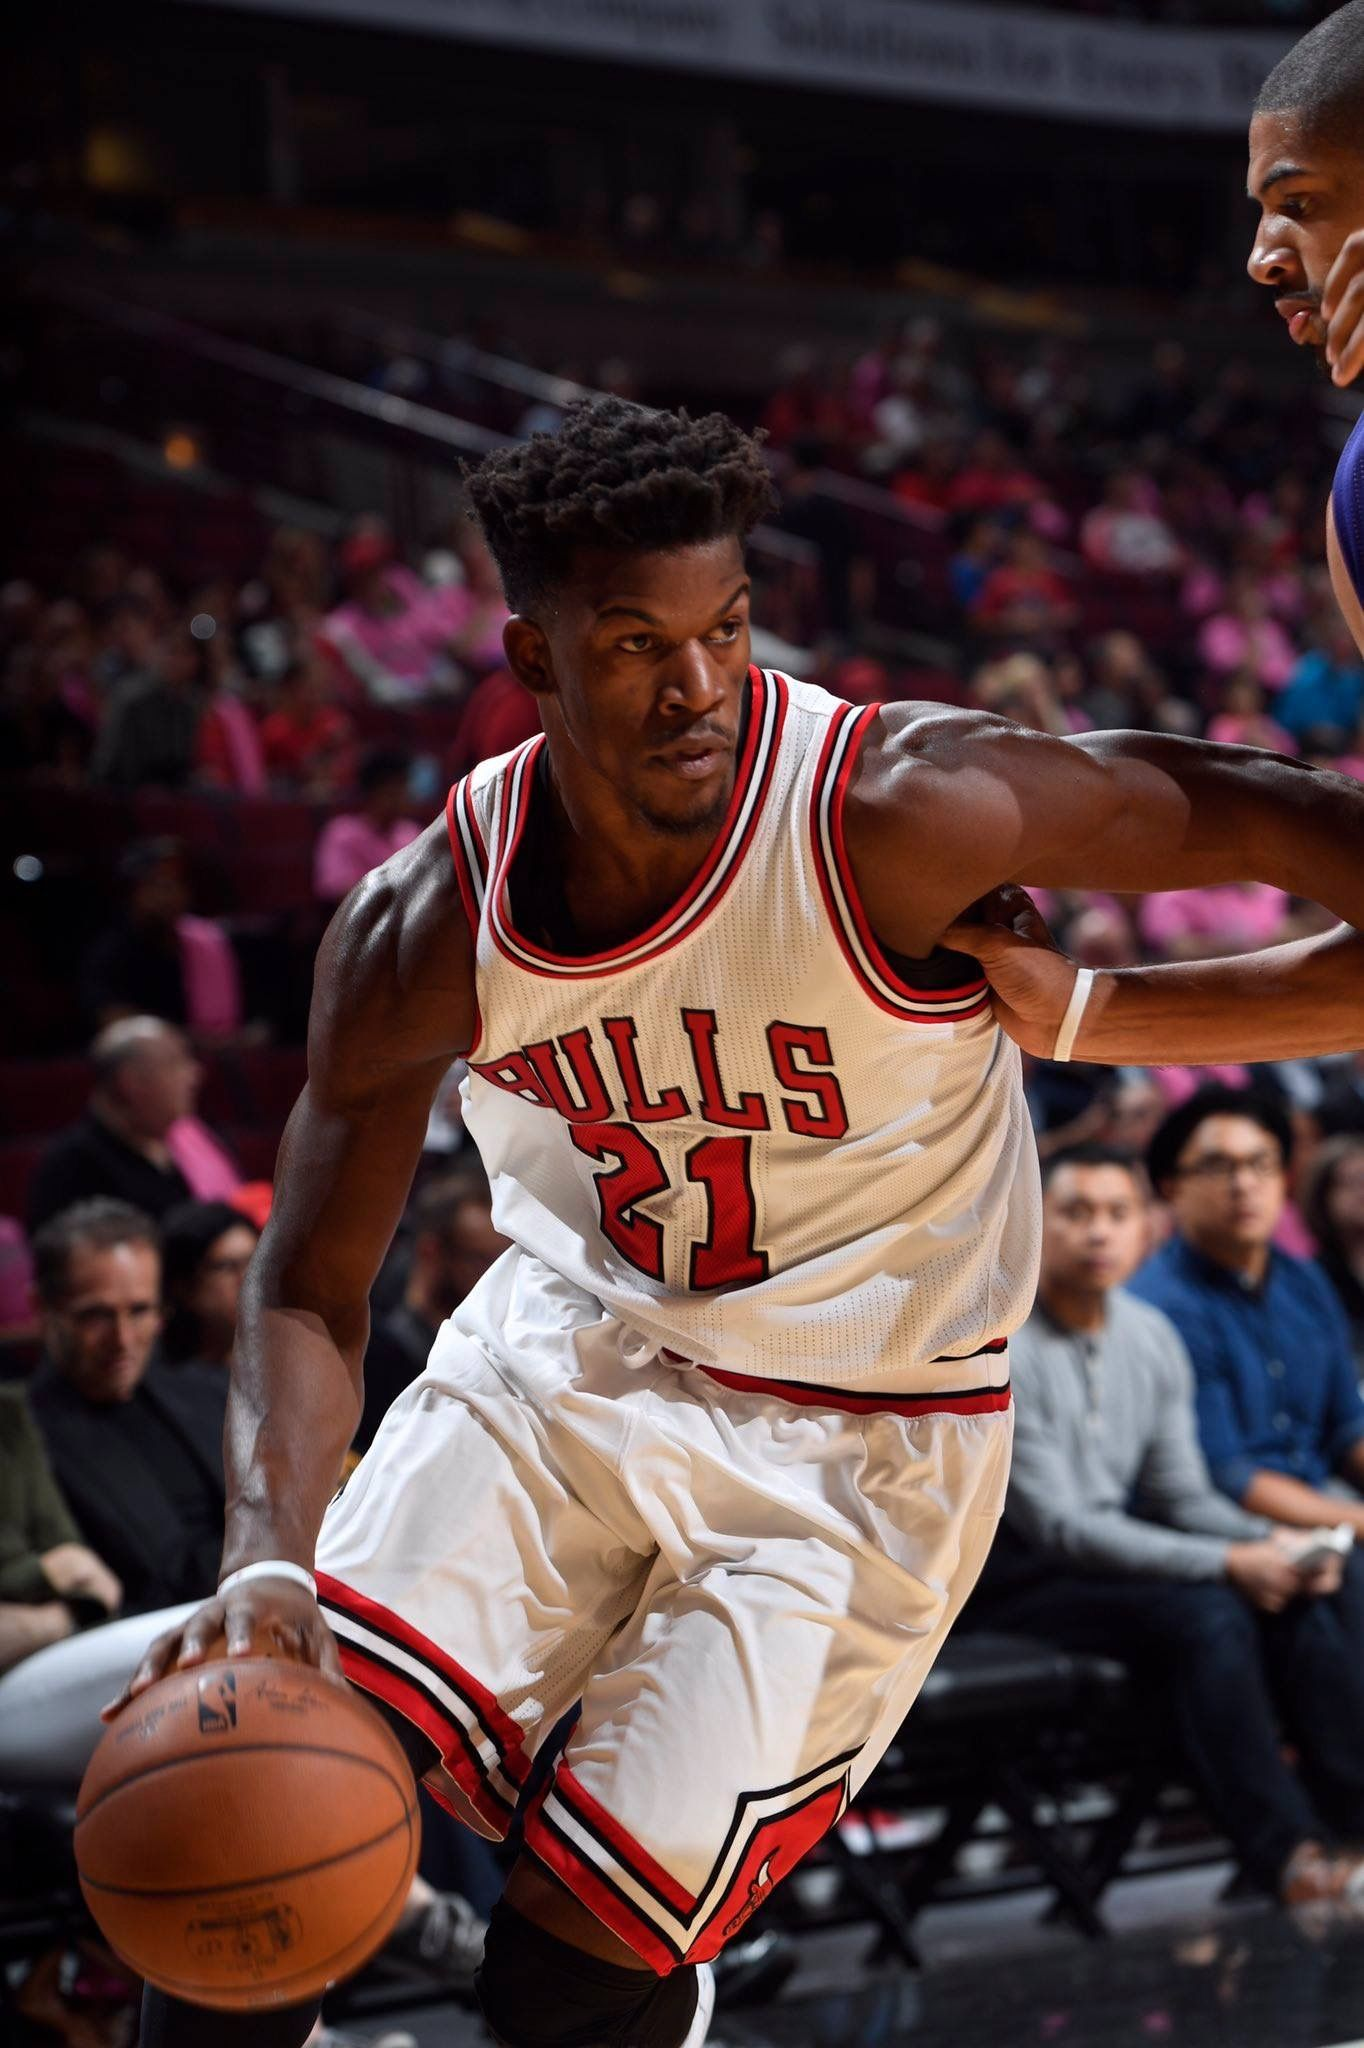 Jimmy Butler Chicago white sox, Da bulls, Sports